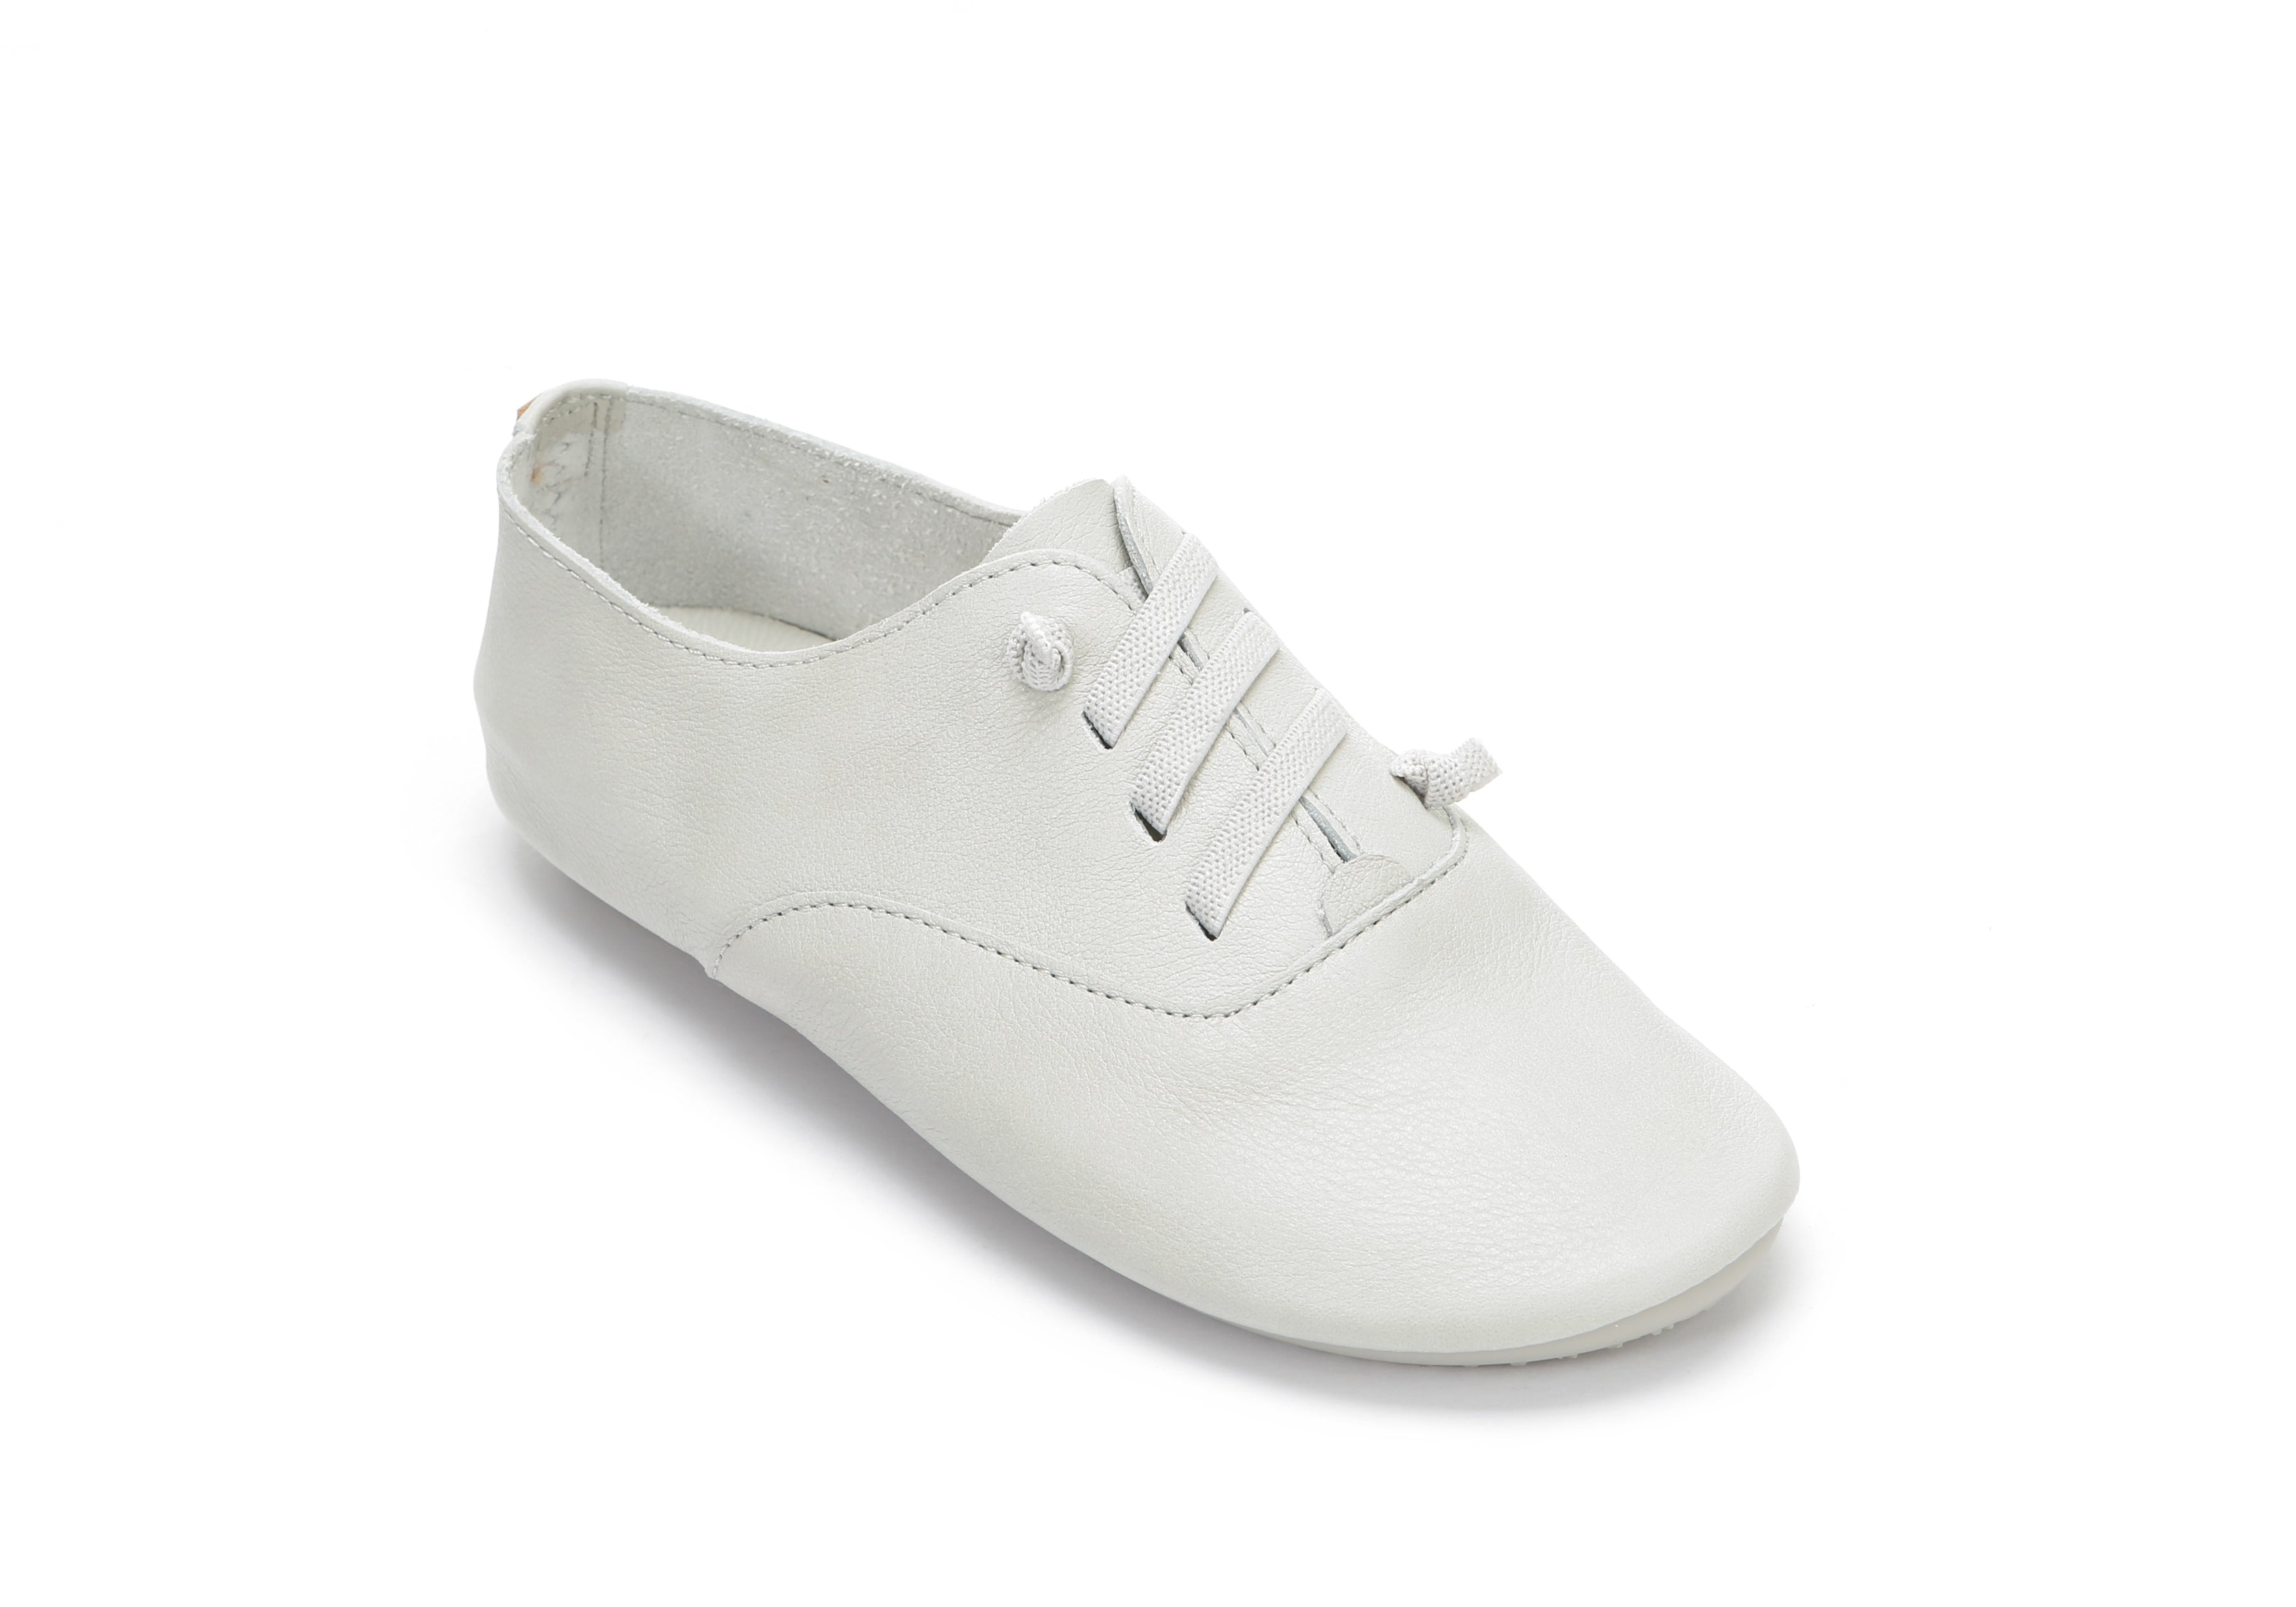 ANOTHERSOLE Laced shoes buy cheap Inexpensive SMz9cso